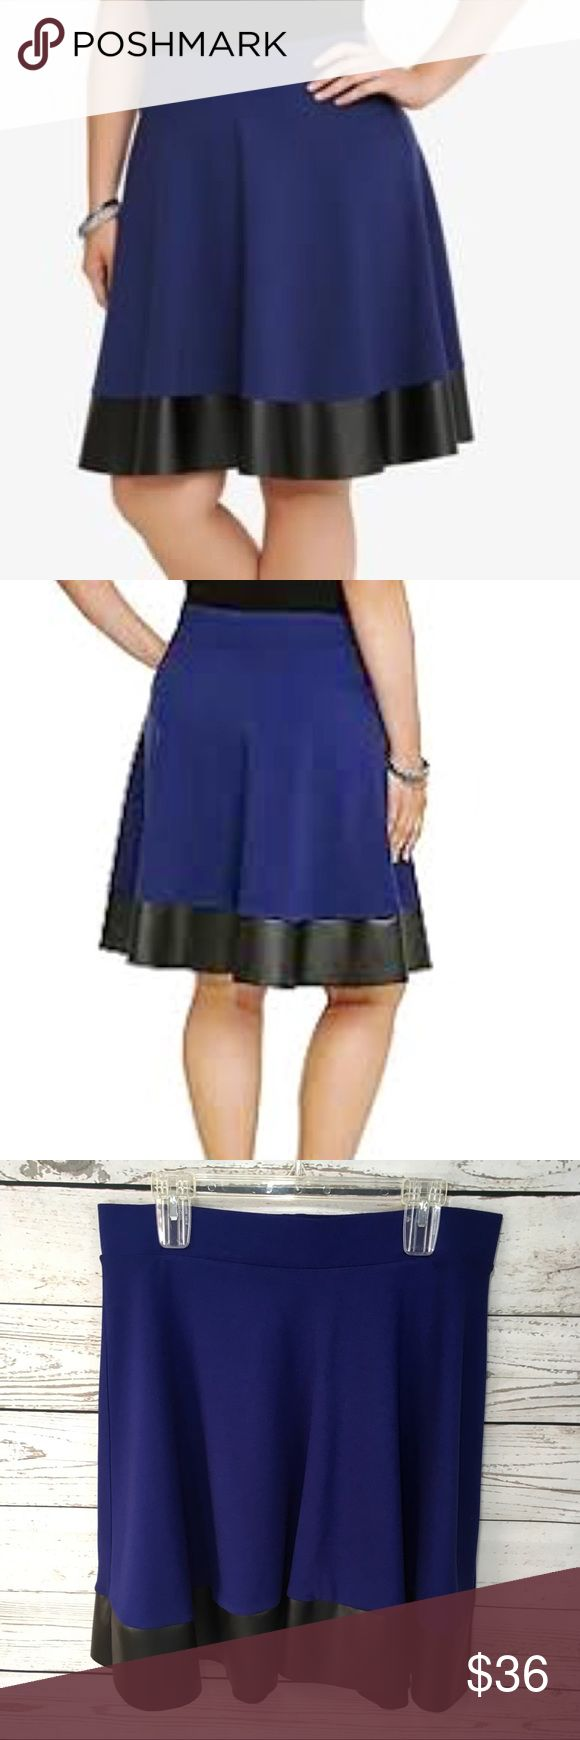 """NWT! Torrid blue & black faux leather skater skirt •Details• Torrid pointe blue stretch skater skirt with black faux leather trim. •Condition• New with tags. (Price tag missing) •Material• 70% rayon 26% nylon 5% spandex •Color• Blue with black faux leather trim All measurements taken while item is laying flat & are approximate •Waist• 17.5"""" stretching to 20"""" •Length• 22@ Torrid Skirts Circle & Skater"""